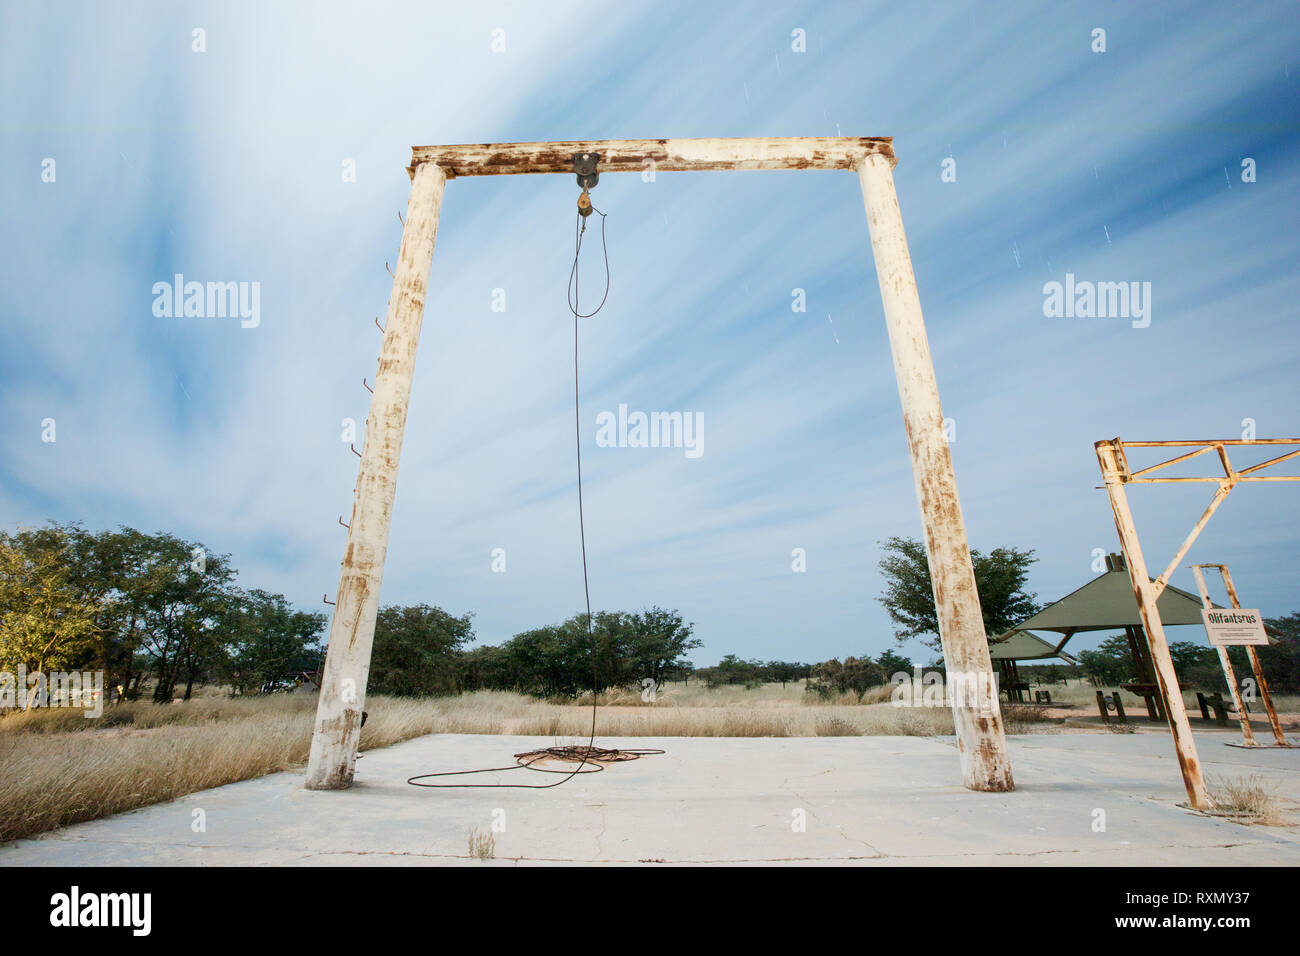 The slaughter structure at Olifantsrus - Stock Image